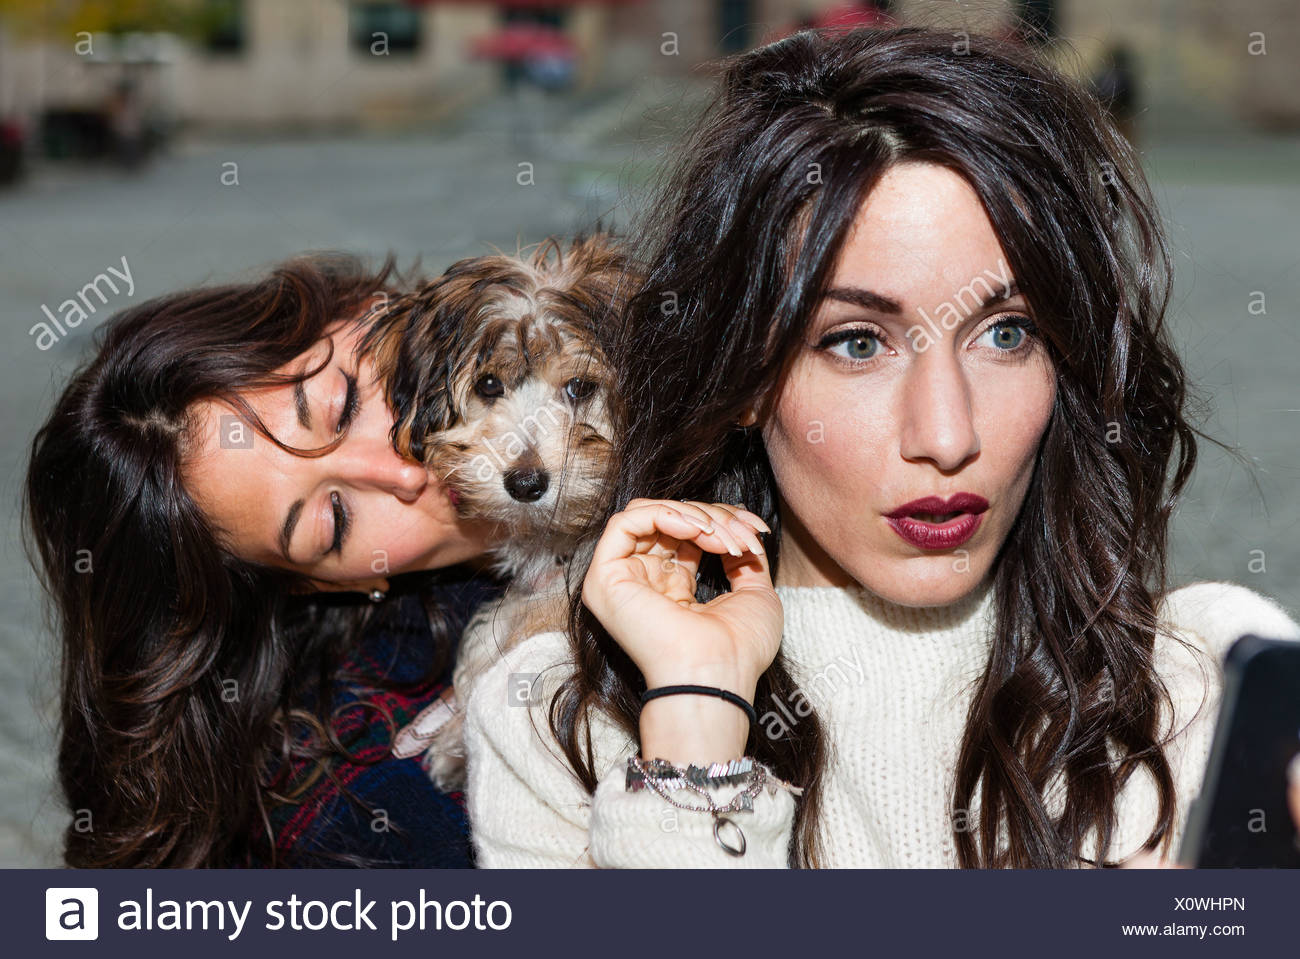 Friends holding pet dog for photograph Stock Photo